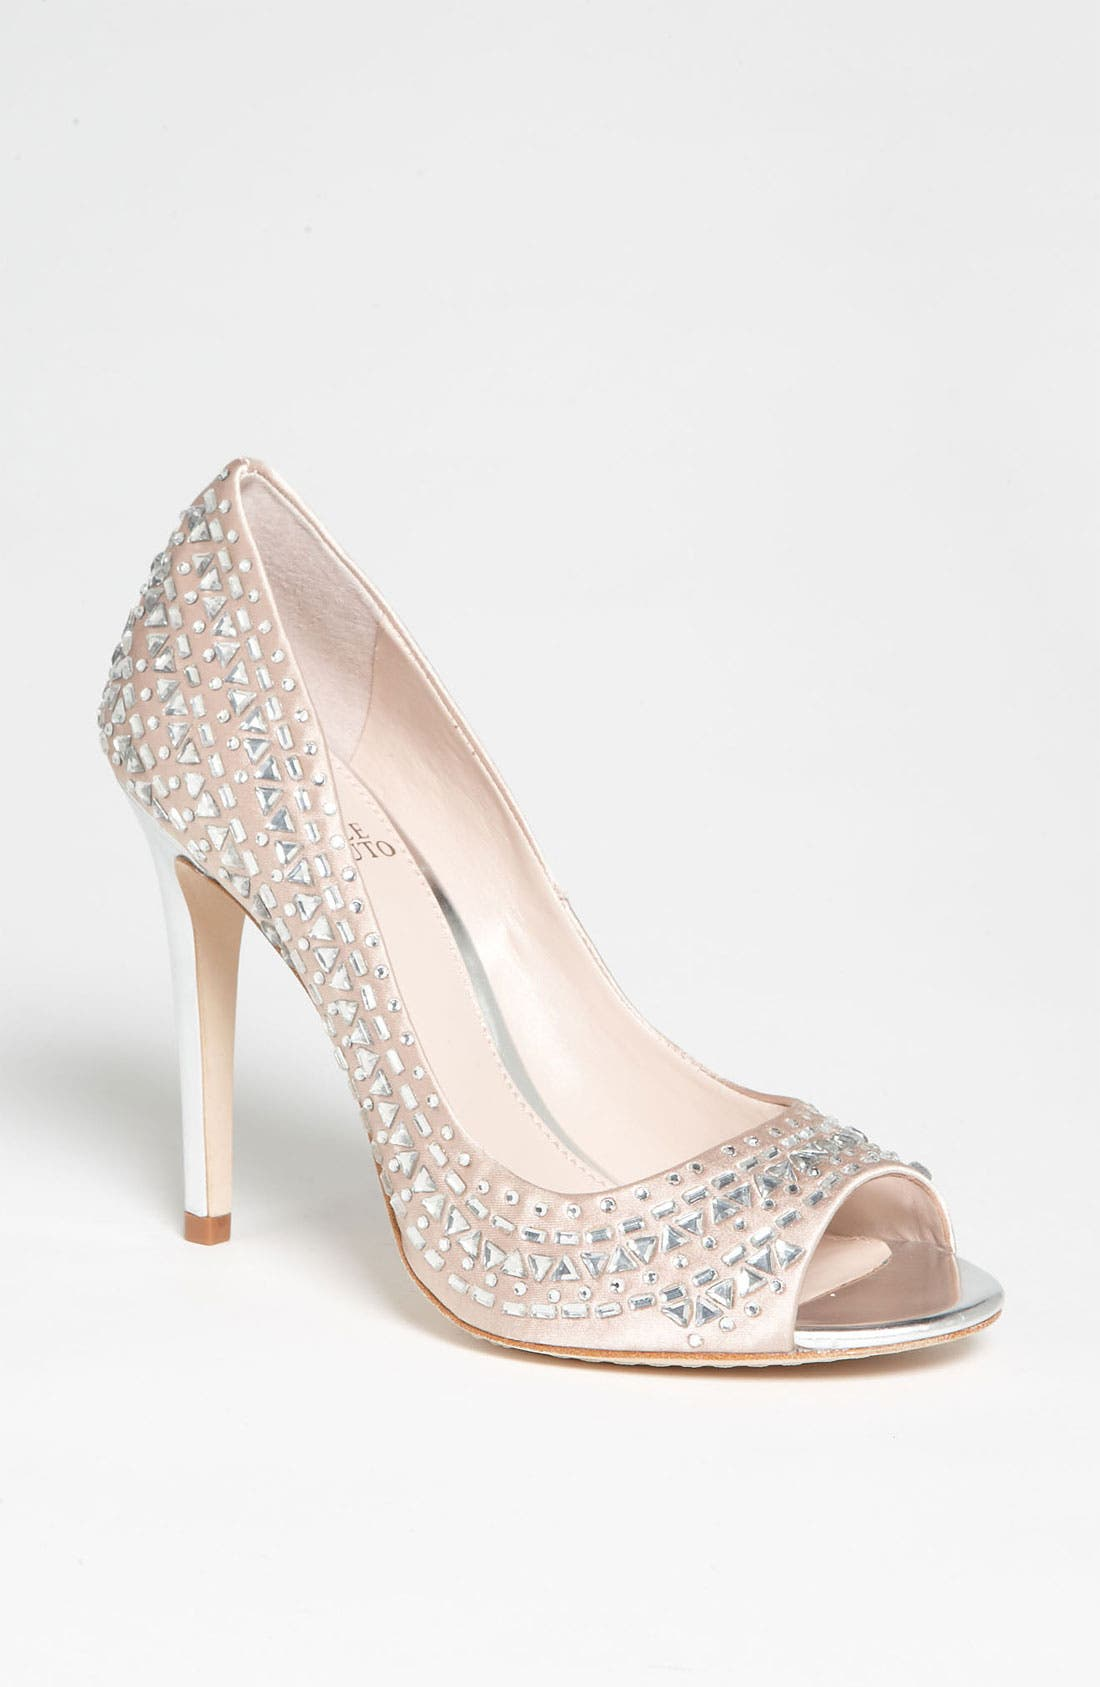 Alternate Image 1 Selected - Vince Camuto 'Lexis' Pump (Online Only)